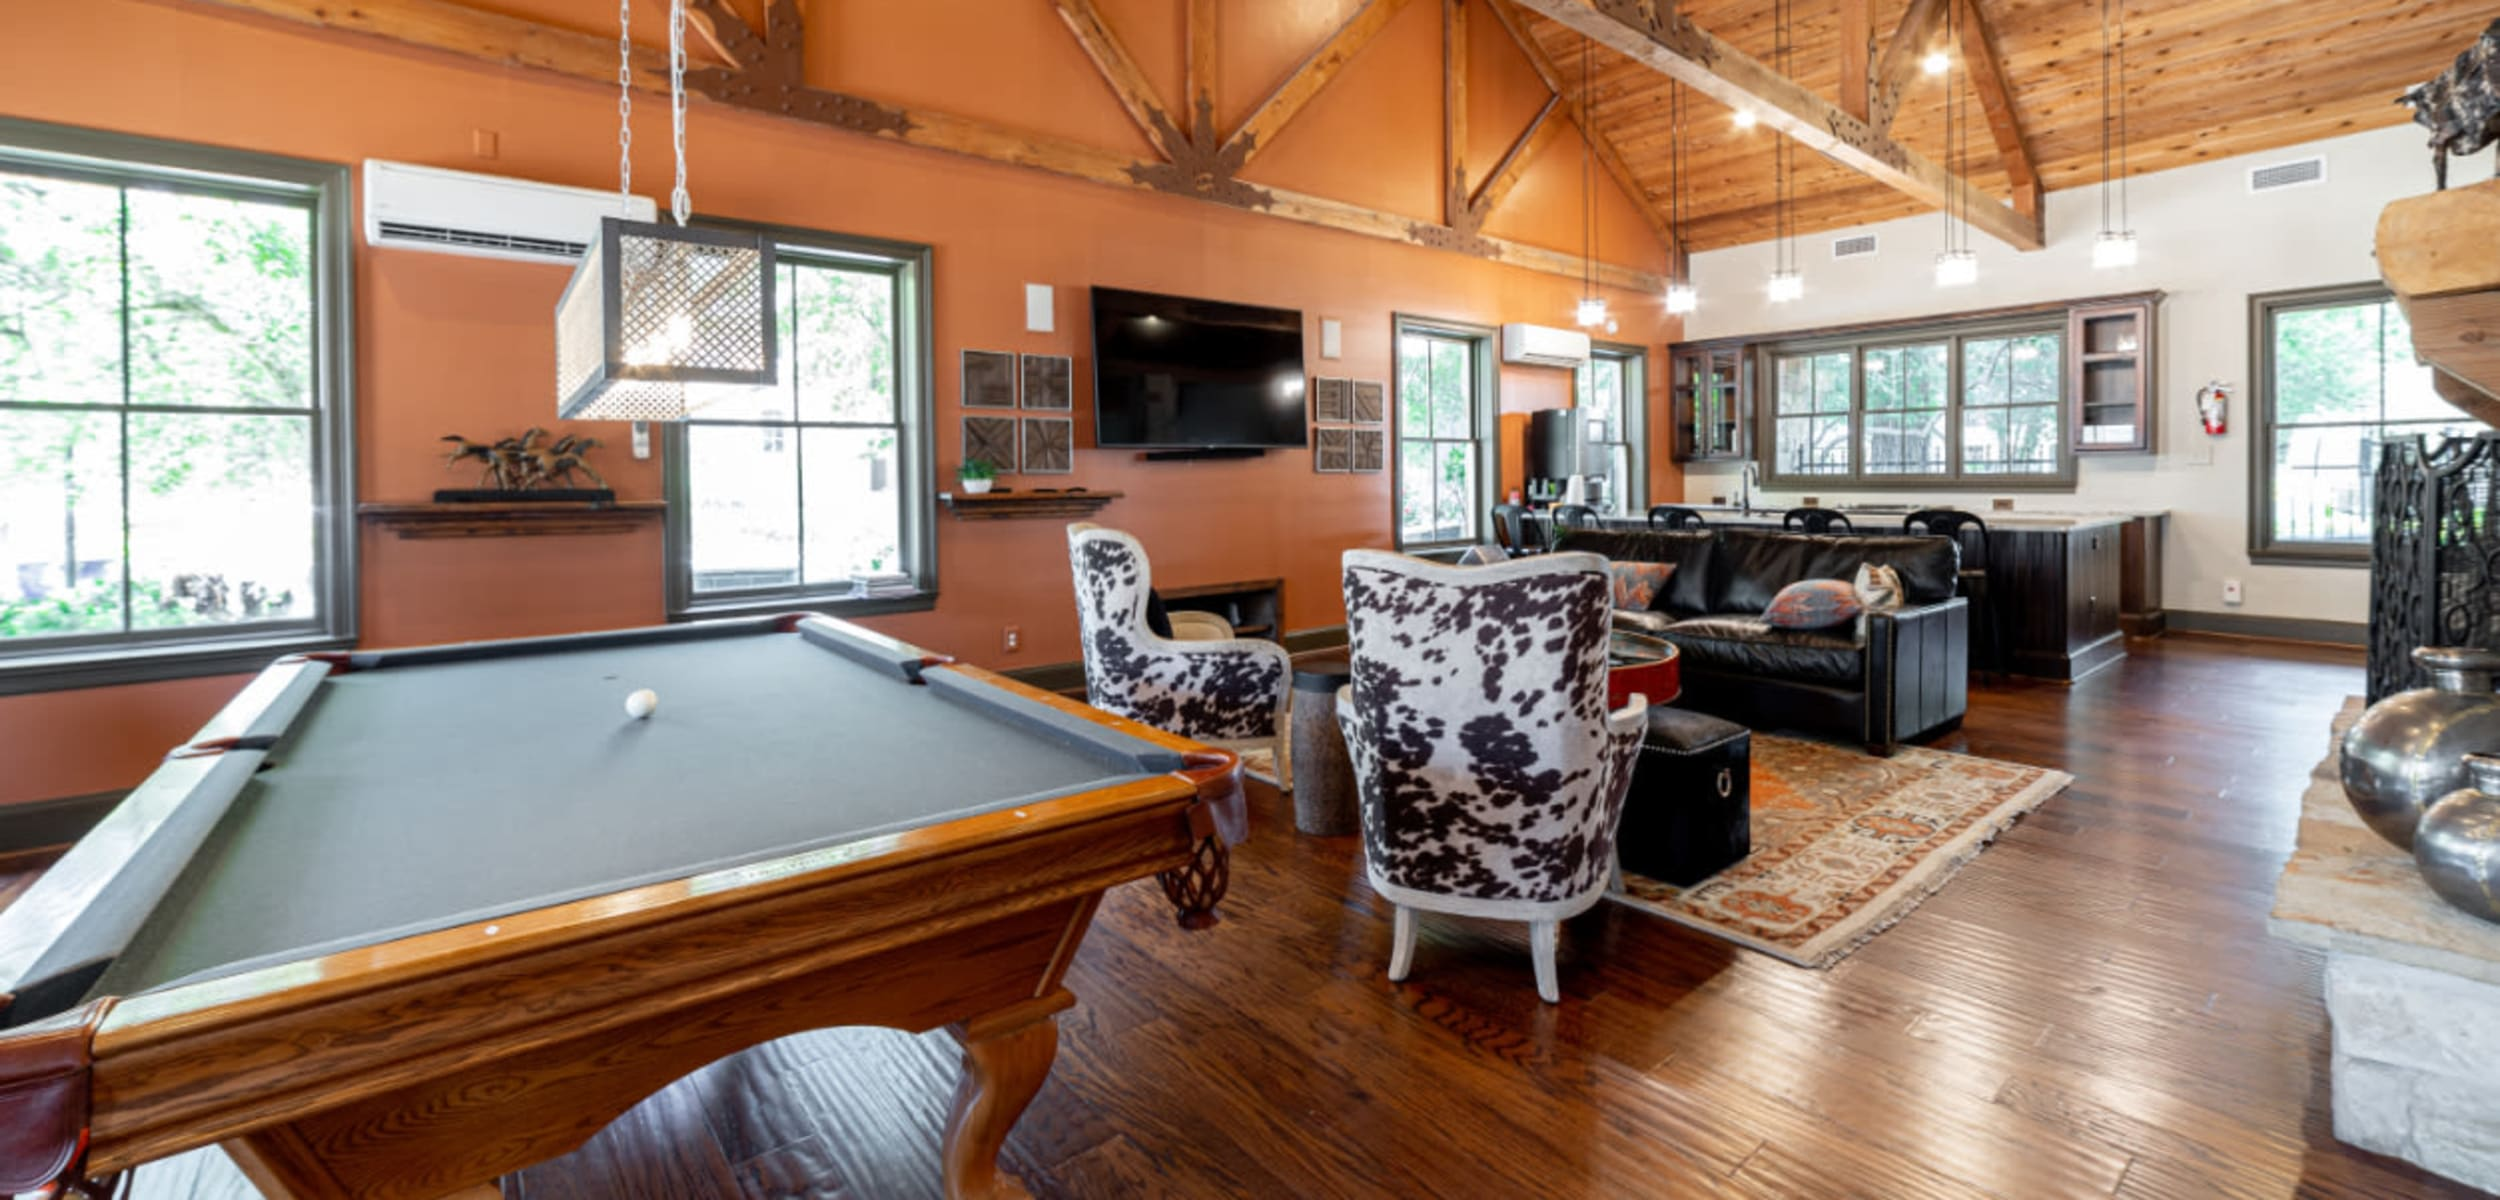 Pool table, seating area, and kitchen in rustic clubhouse at Marquis at Bellaire Ranch in Fort Worth Texas,